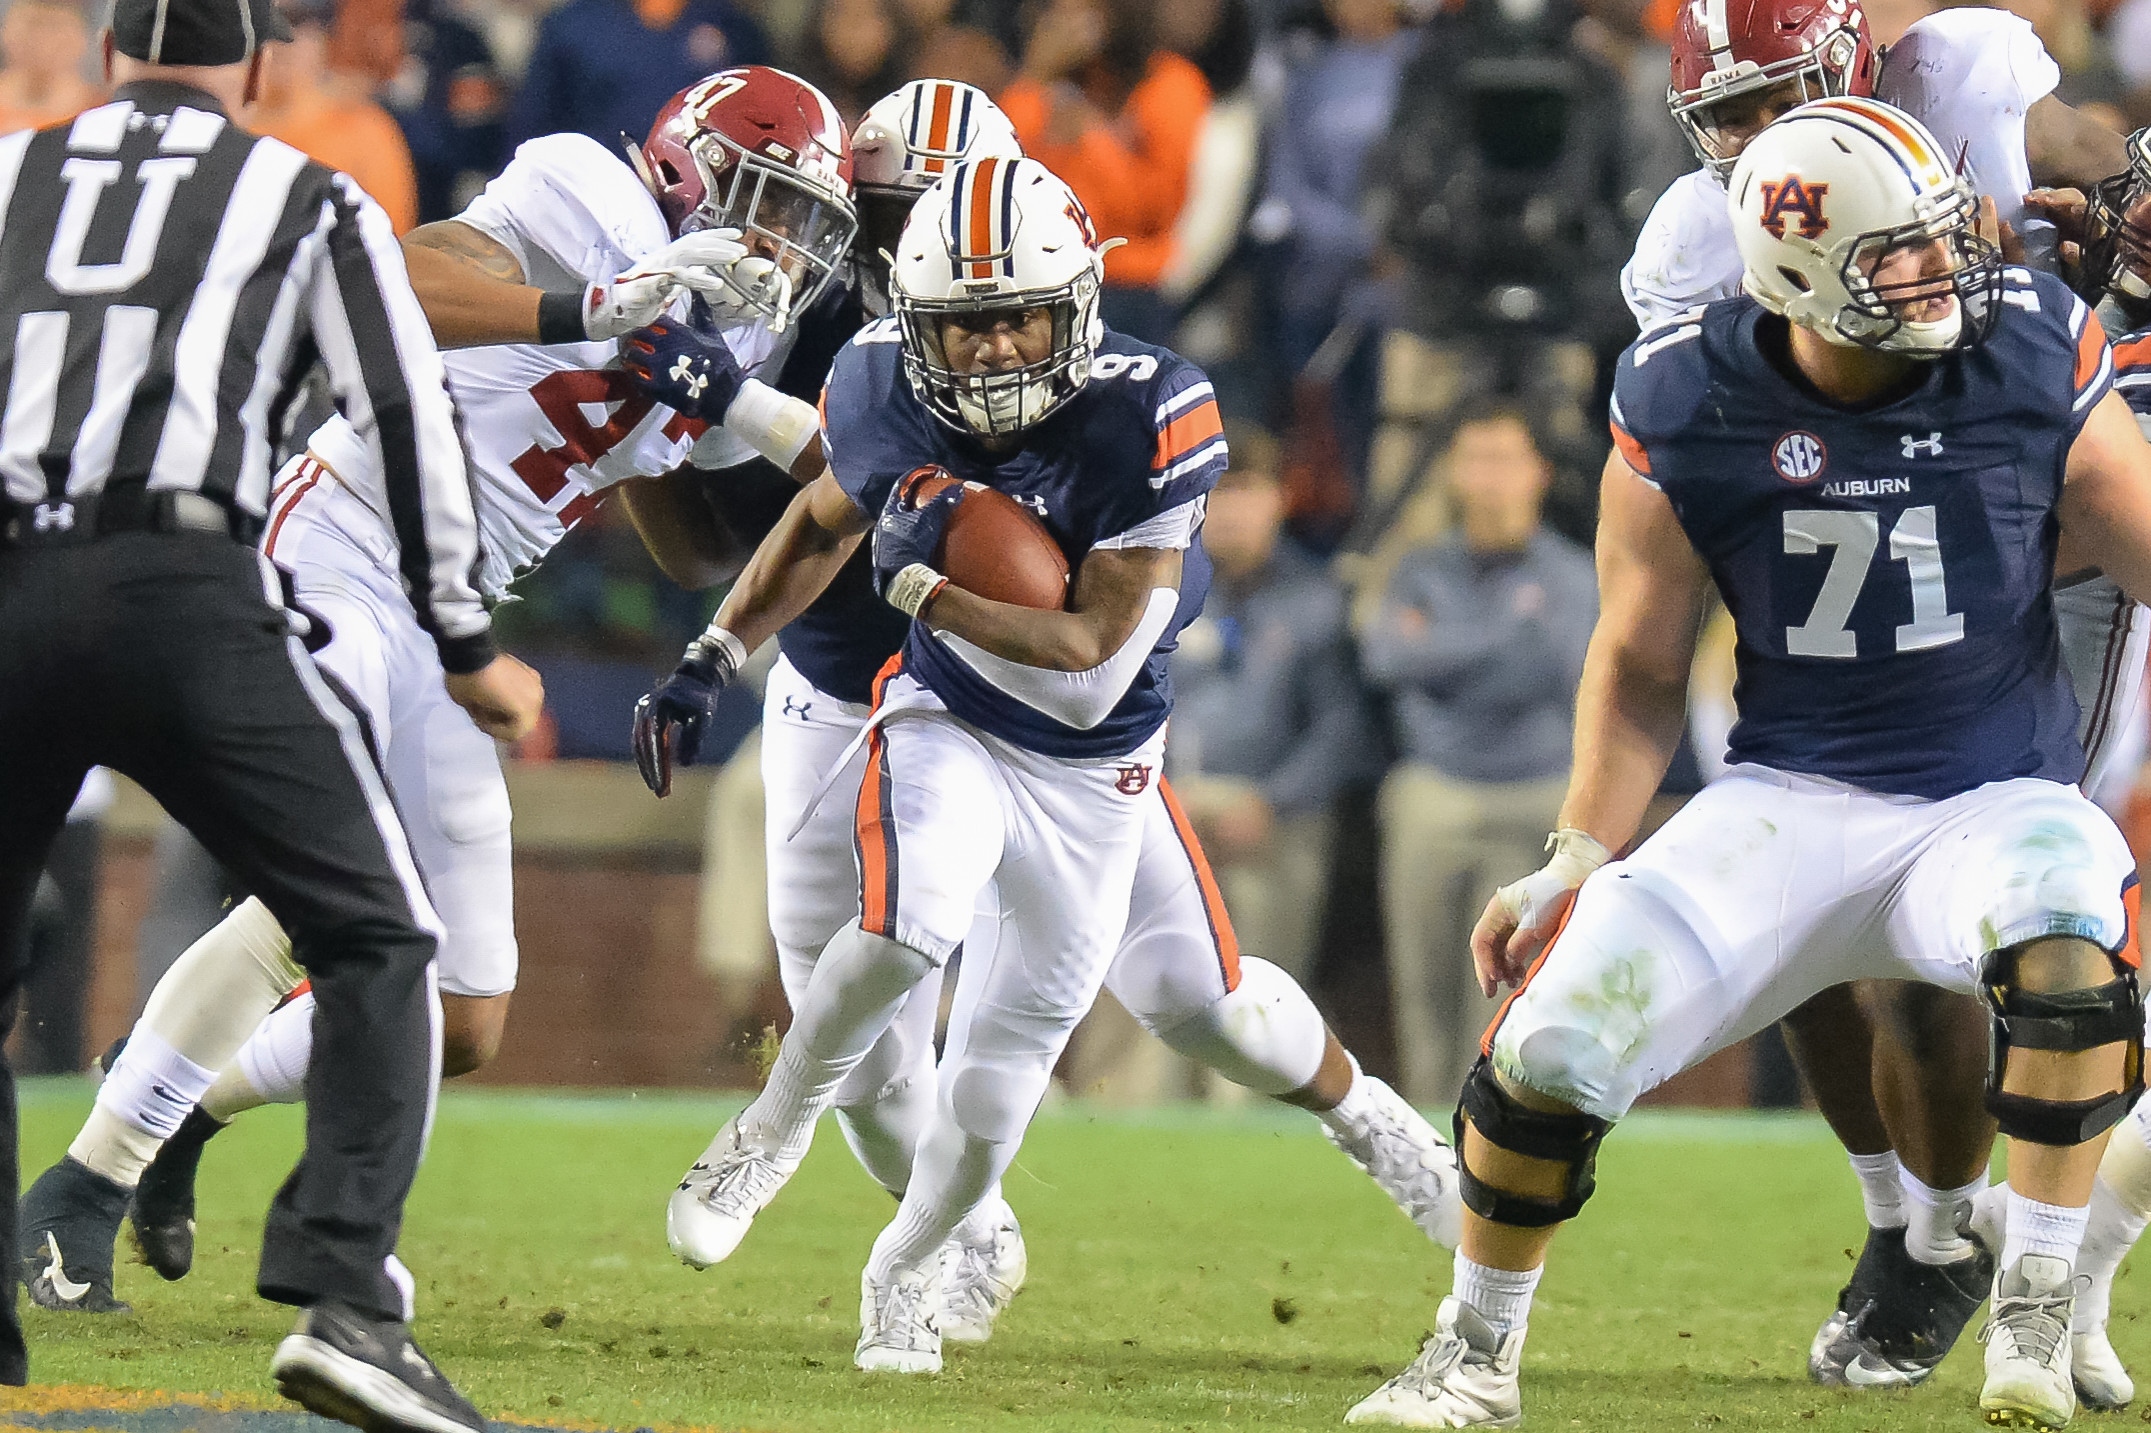 Auburn Tigers running back Kam Martin (9) breaks through the line during the second half of Saturday's game, at Jordan-Hare Stadium.